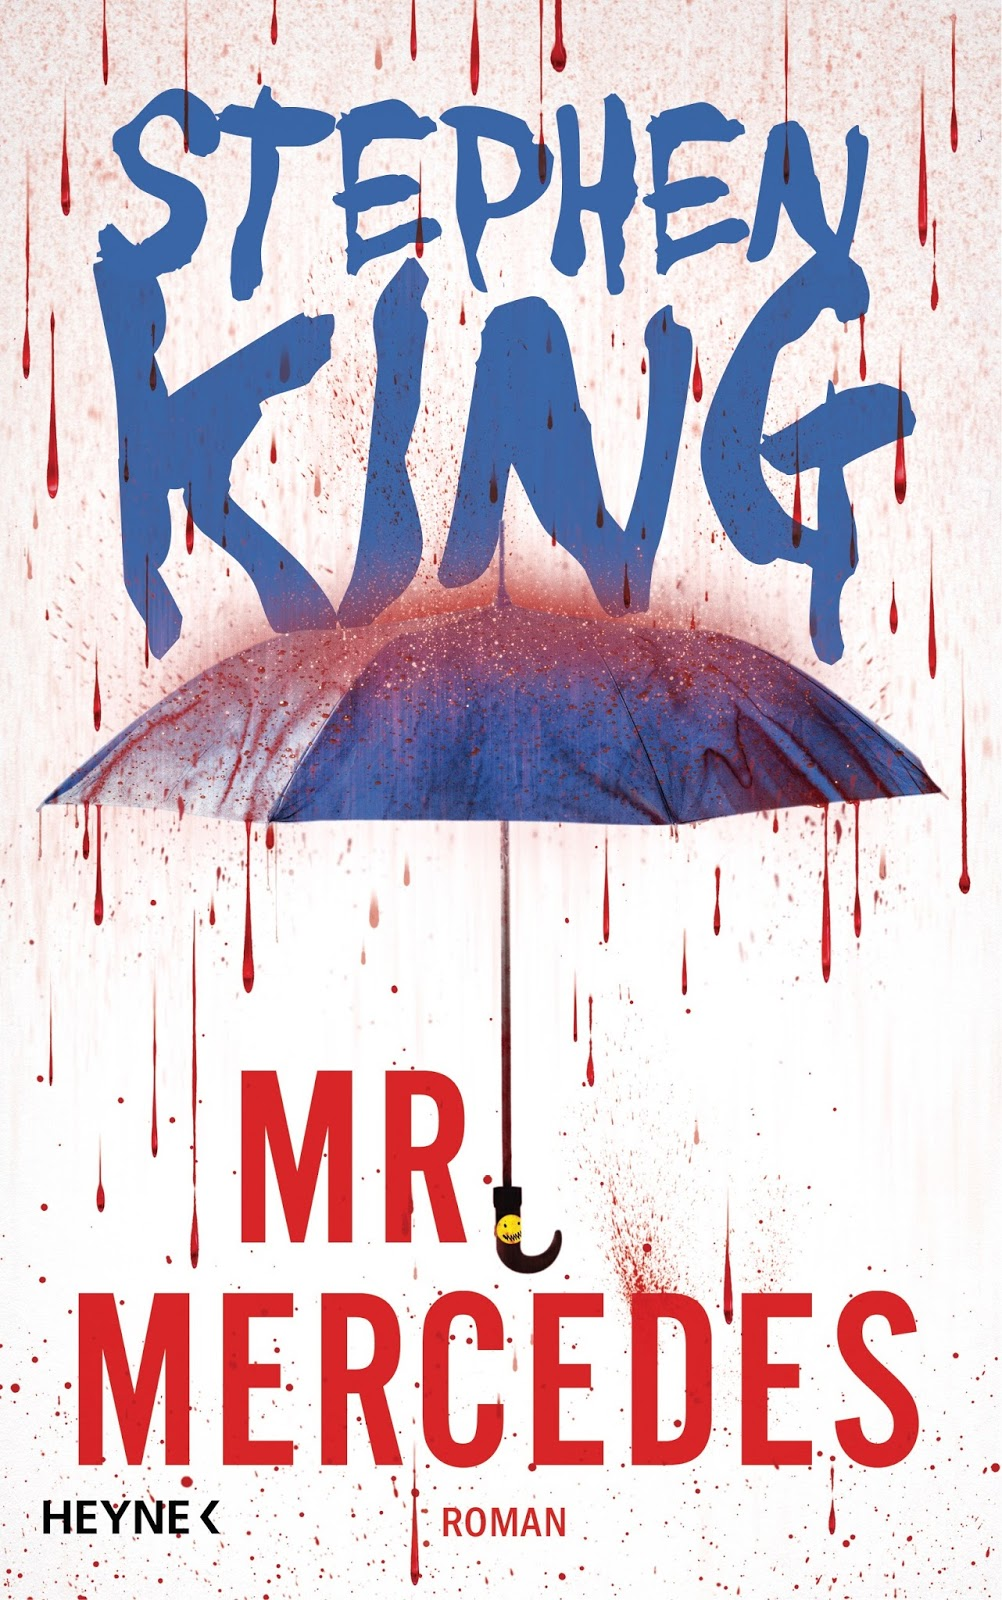 http://nothingbutn9erz.blogspot.co.at/2014/10/mr-mercedes-stephen-king.html